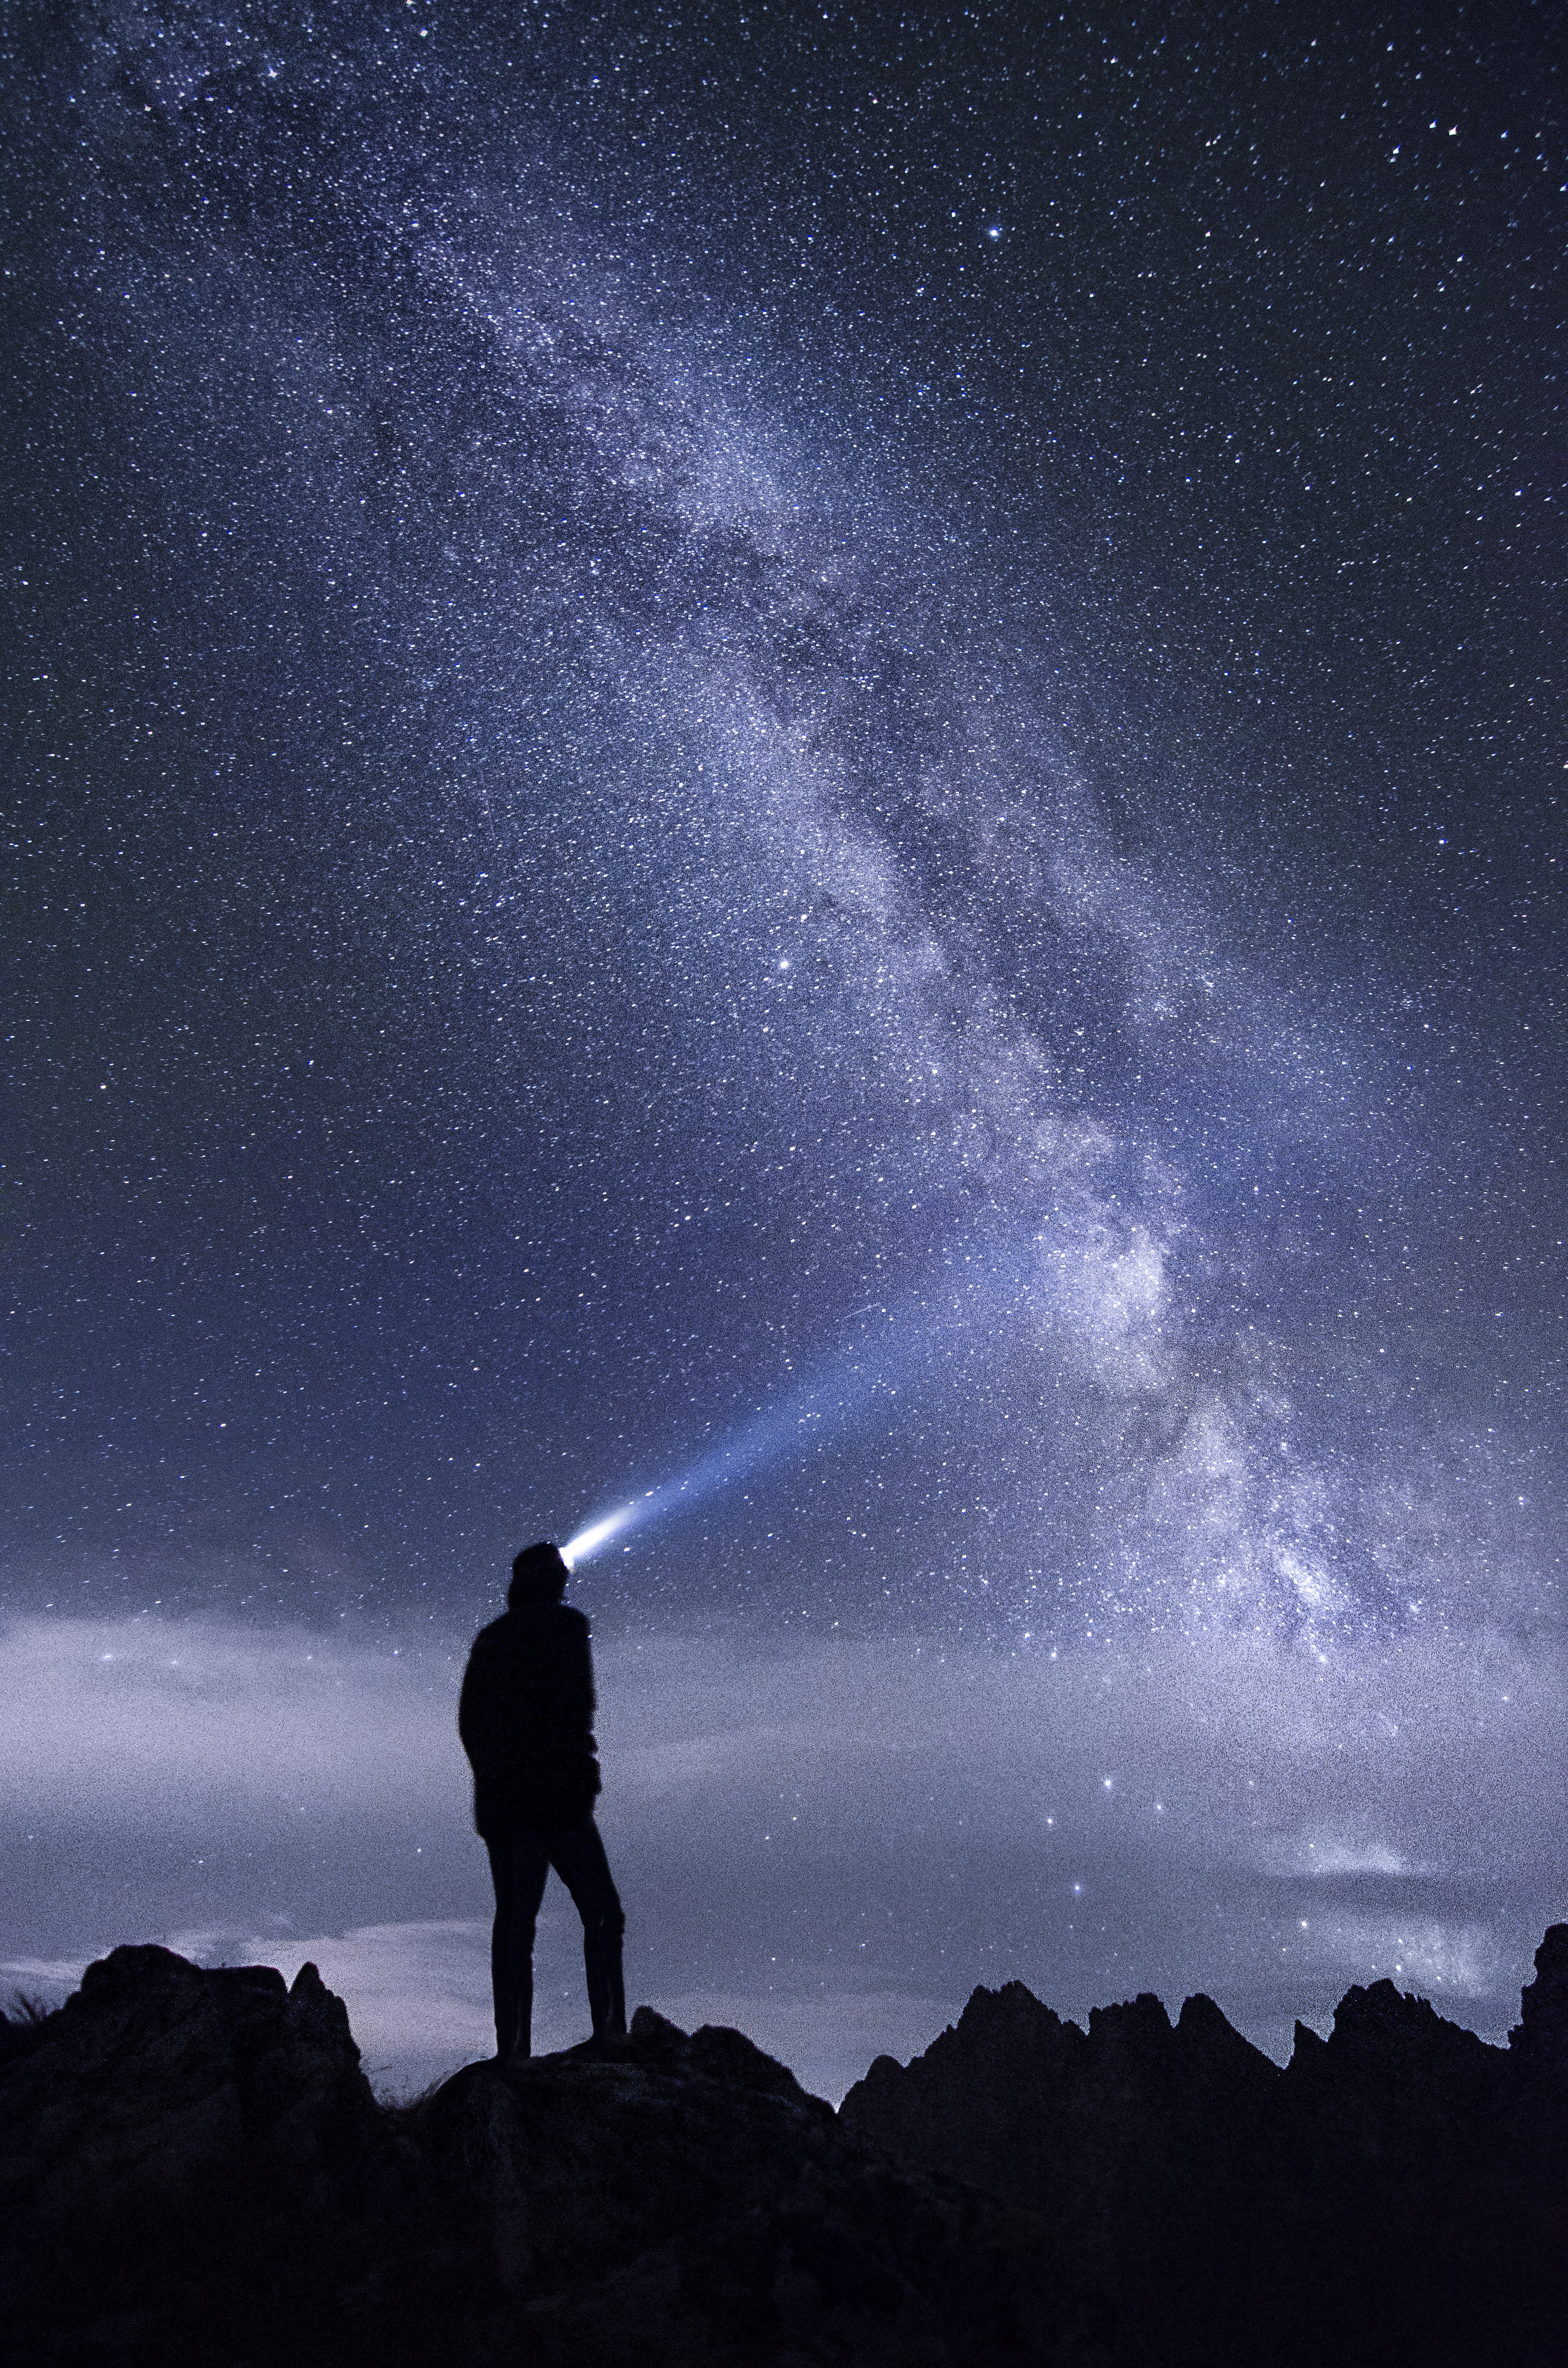 Silhouette of Man Standing on Mountain during Night